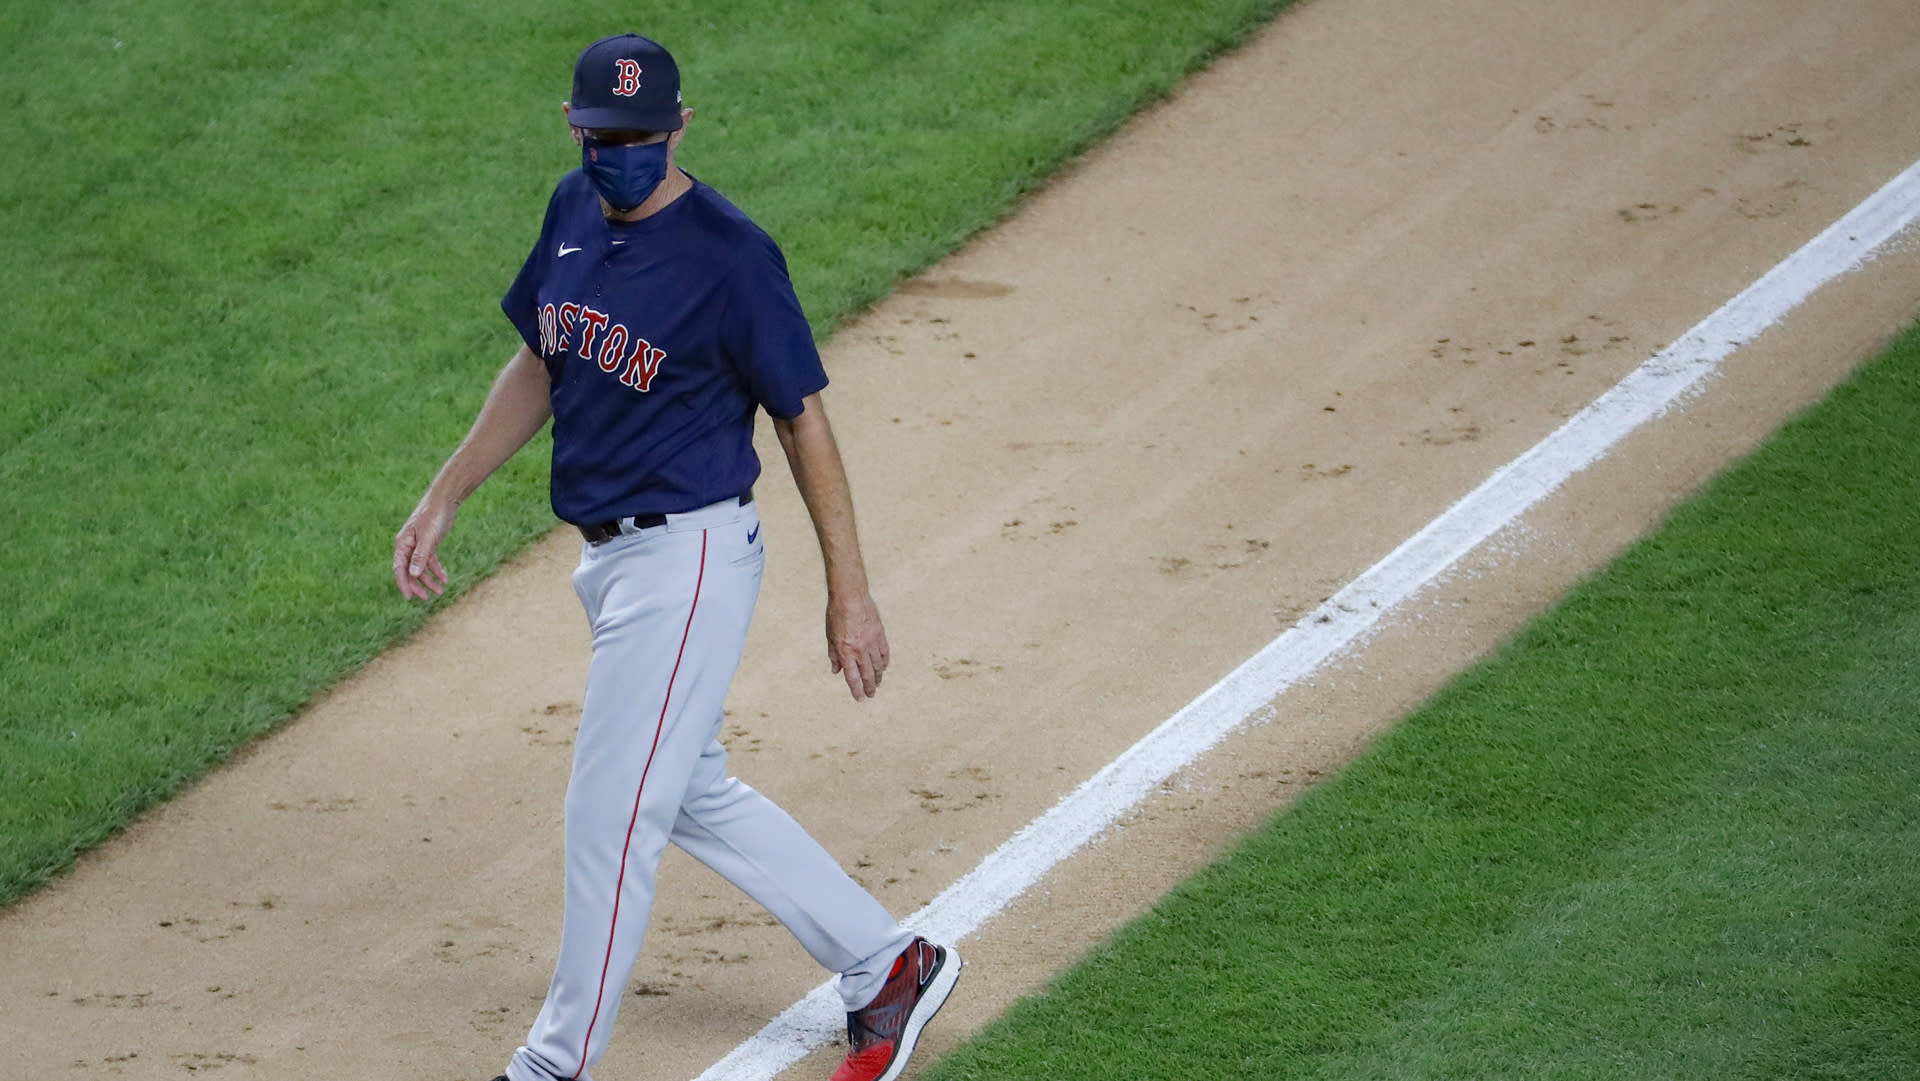 Call this miserable MLB season now, because Red Sox aren't going anywhere